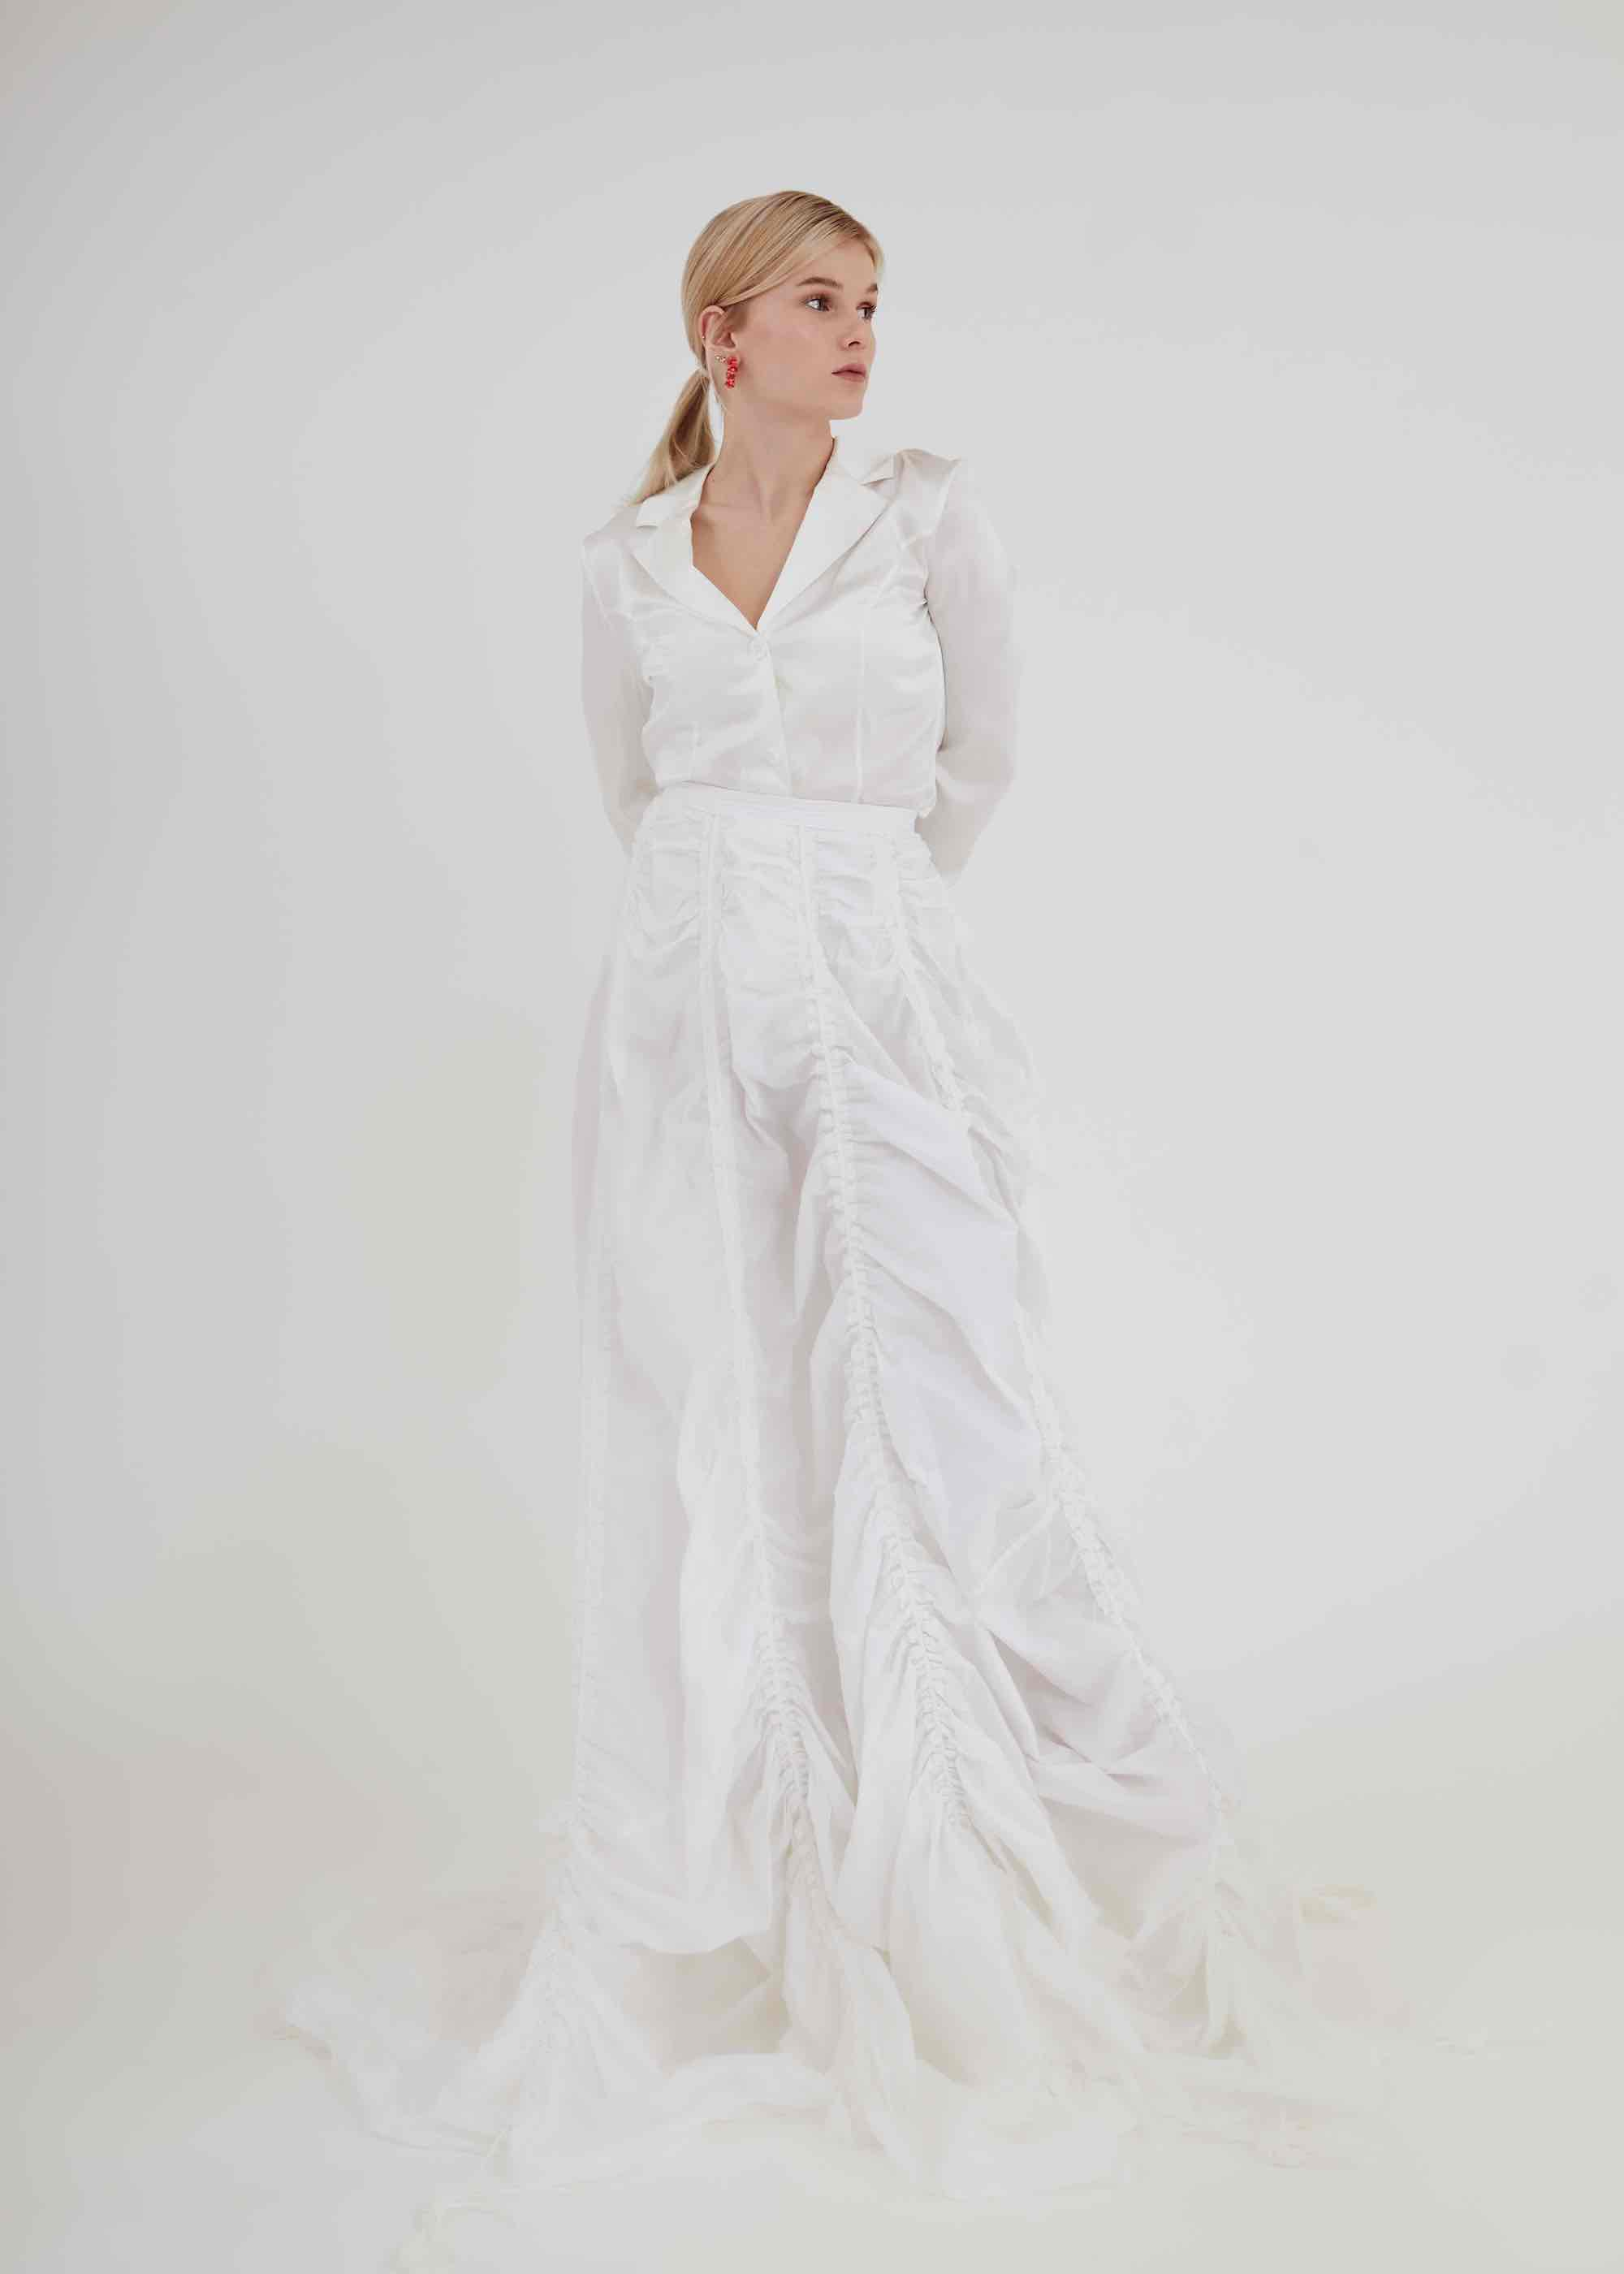 Singer Nykki features in Rollacoaster wearing all white jump suit